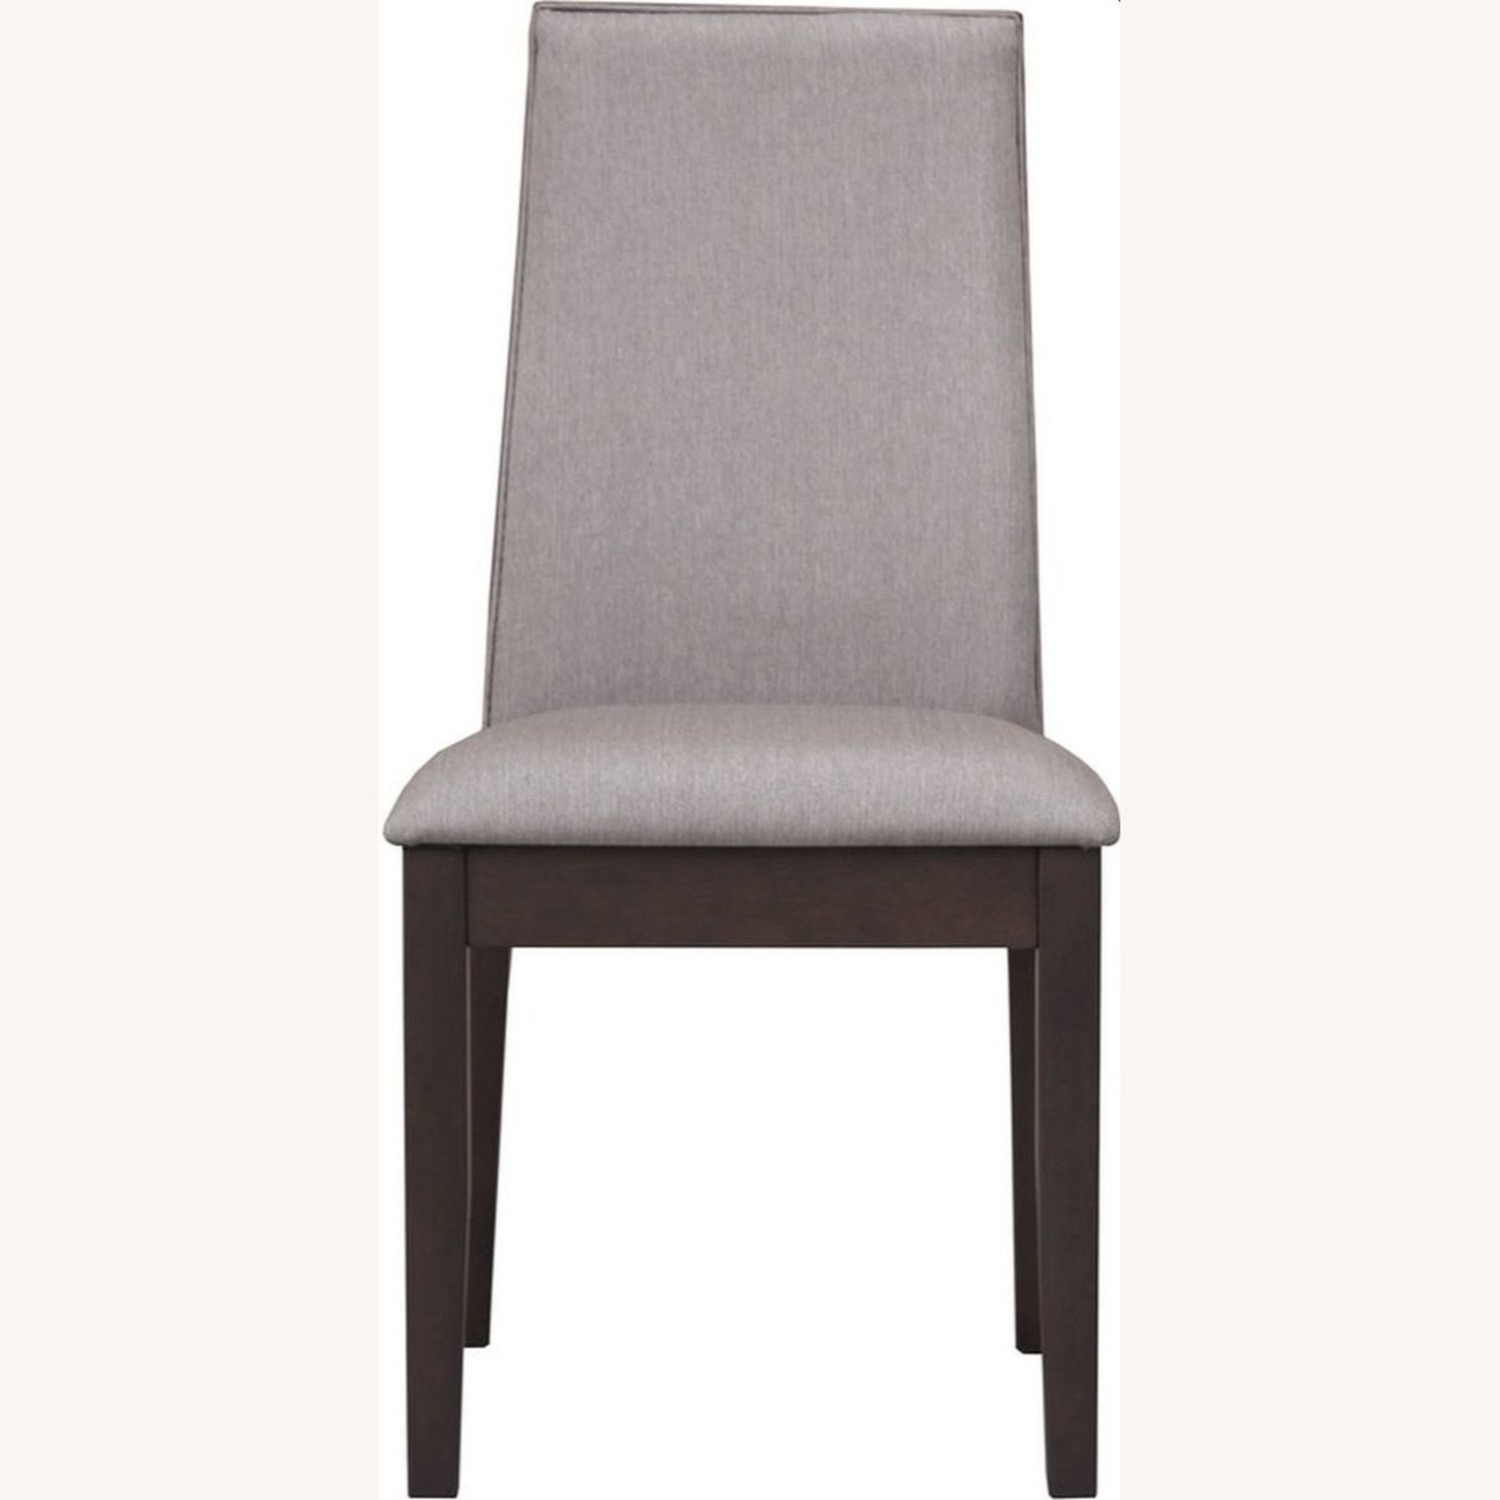 Dining Chair In Grey Fabric & Espresso Wood Finish - image-2